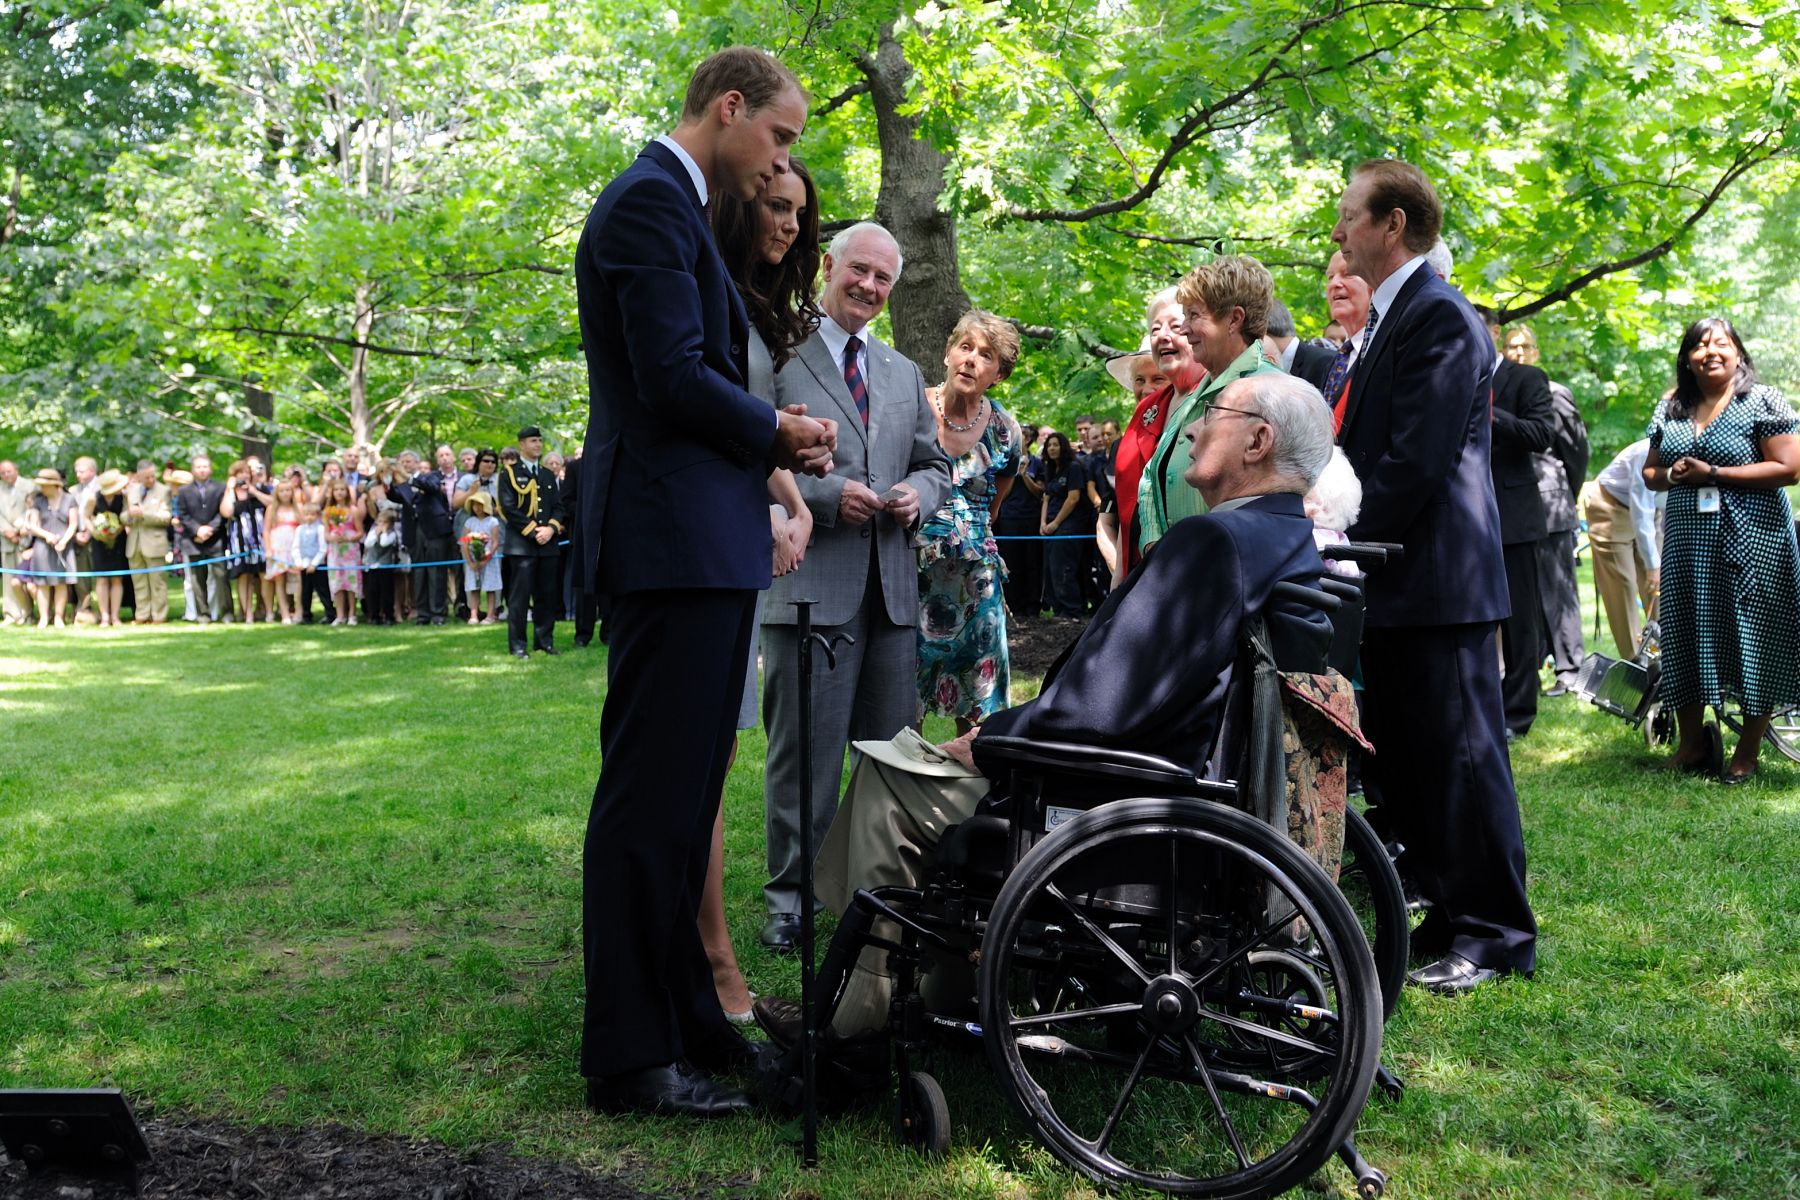 Their Royal Highnesses also meet with couples that married on the same day as them 50, and 70 years ago.